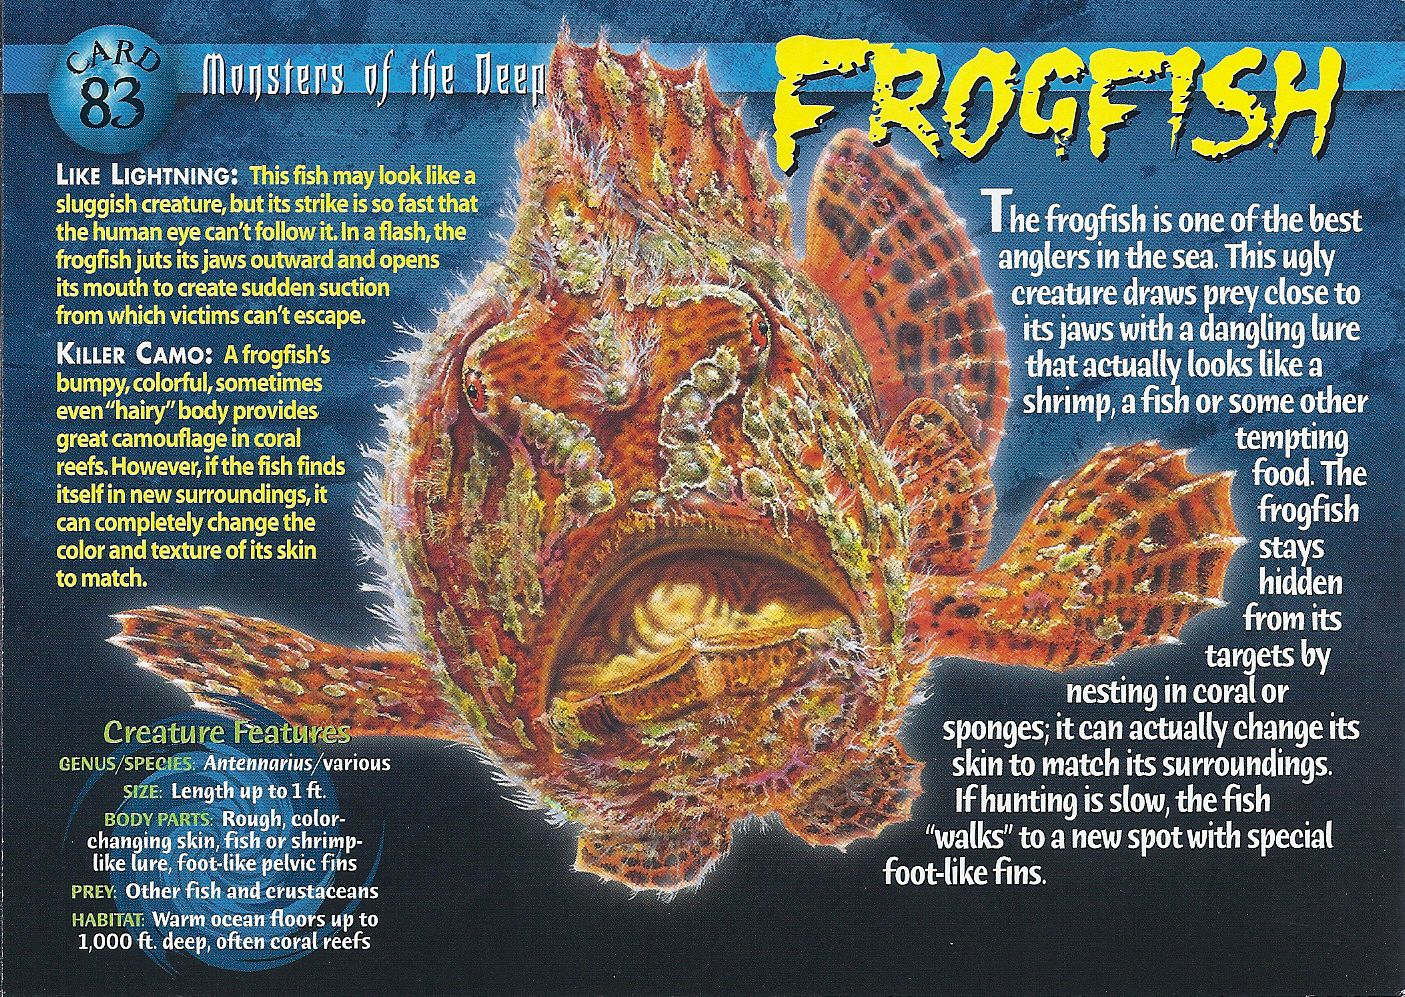 Facts about Frogfish